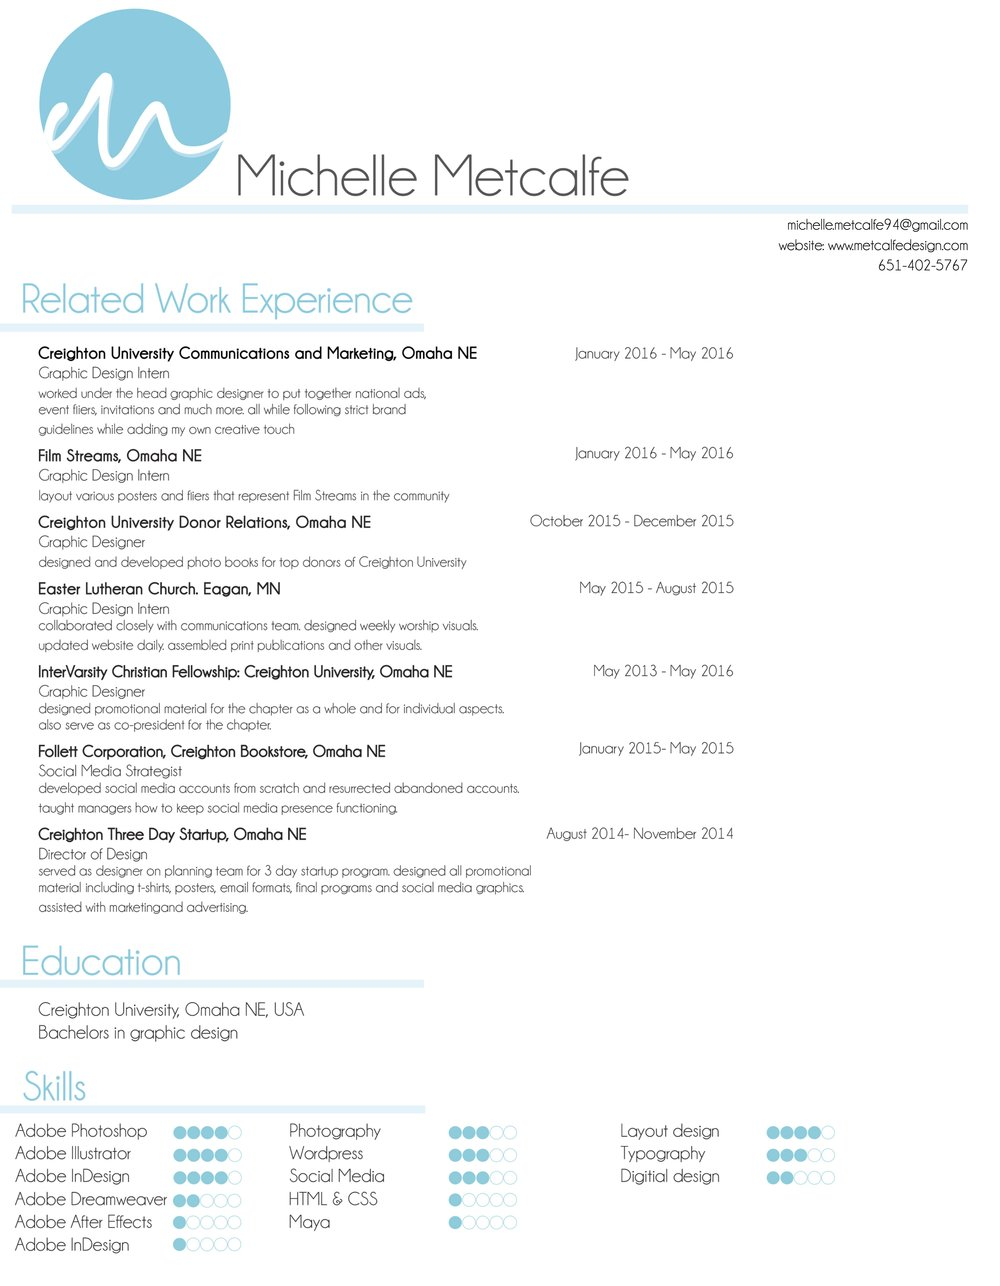 Resume_metcalfe copy 2.jpg